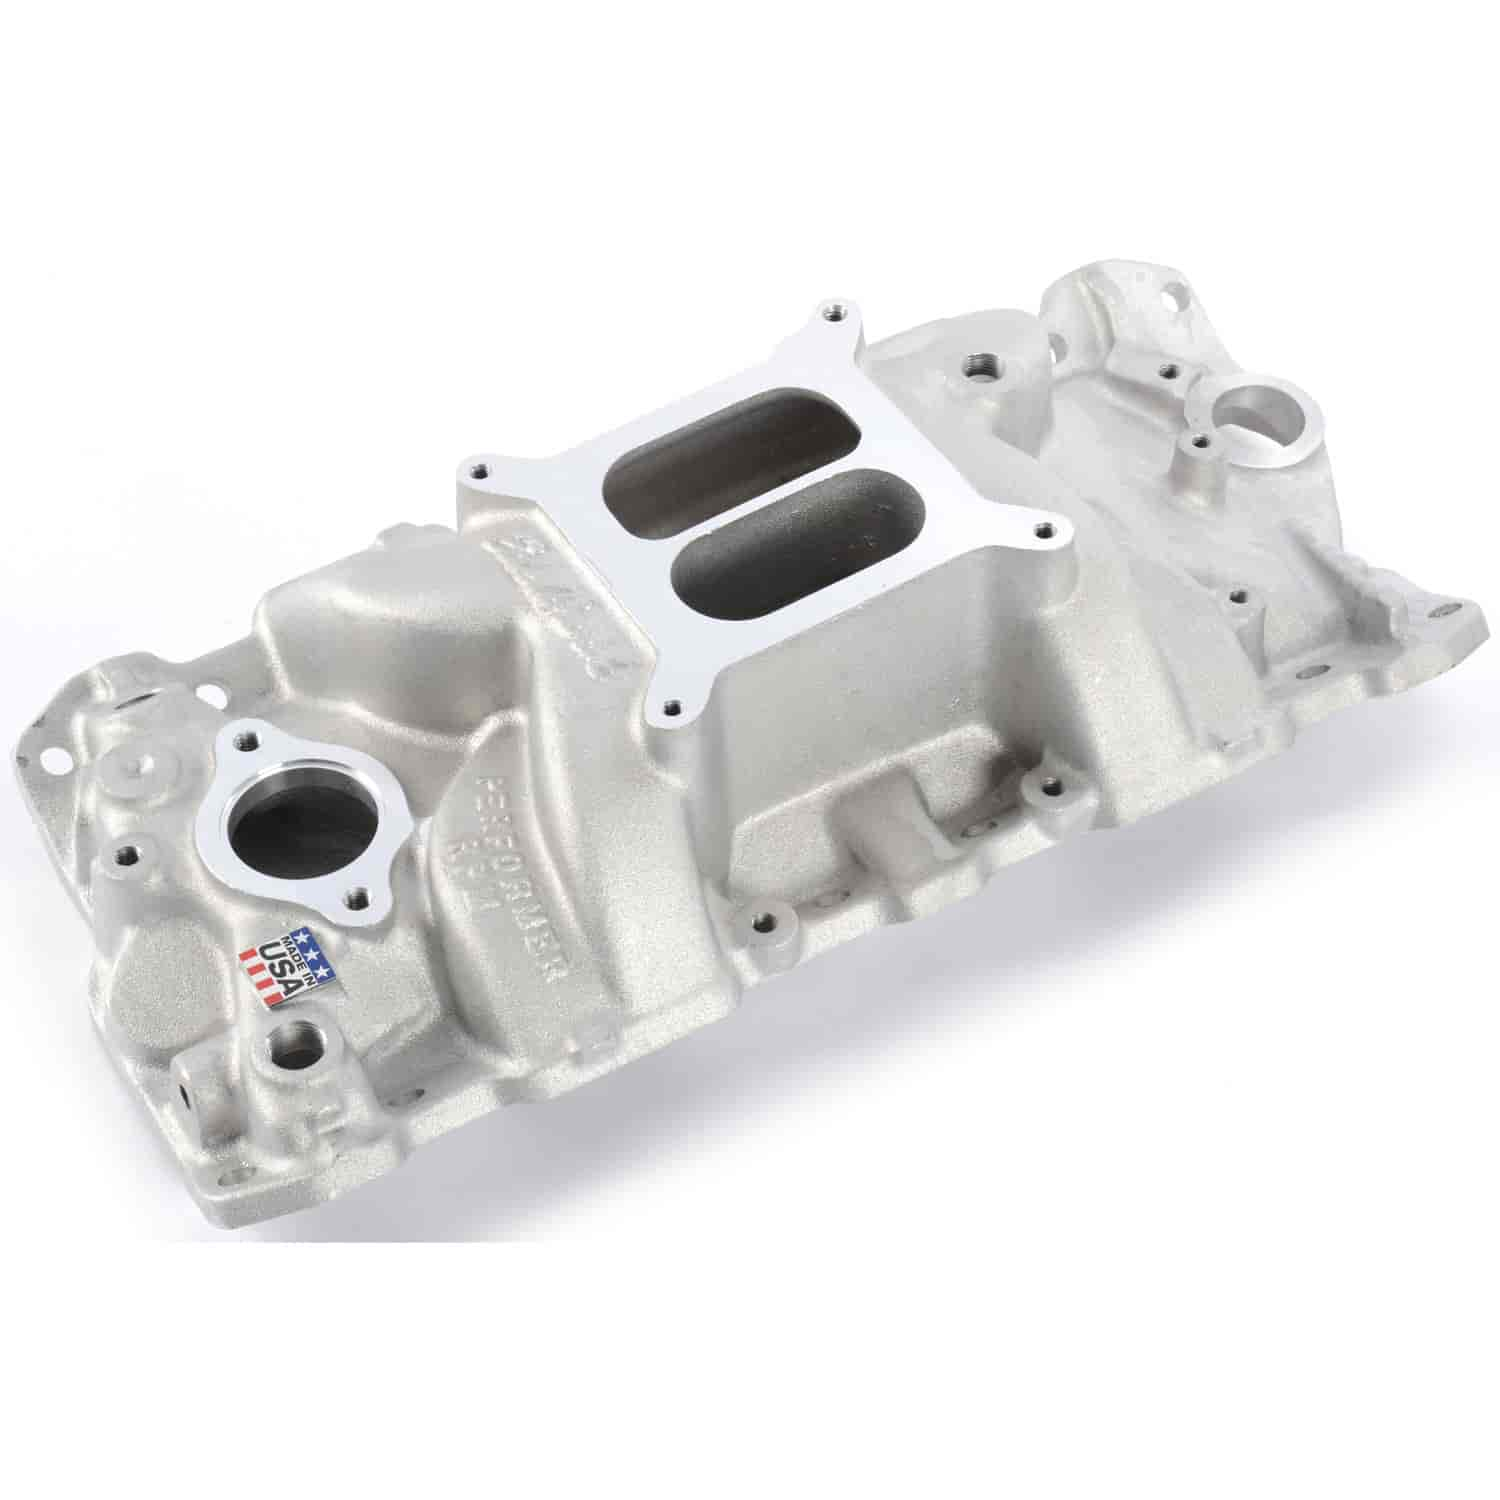 Edelbrock 7101 - Edelbrock Performer RPM Manifolds & Kits for Chevrolet